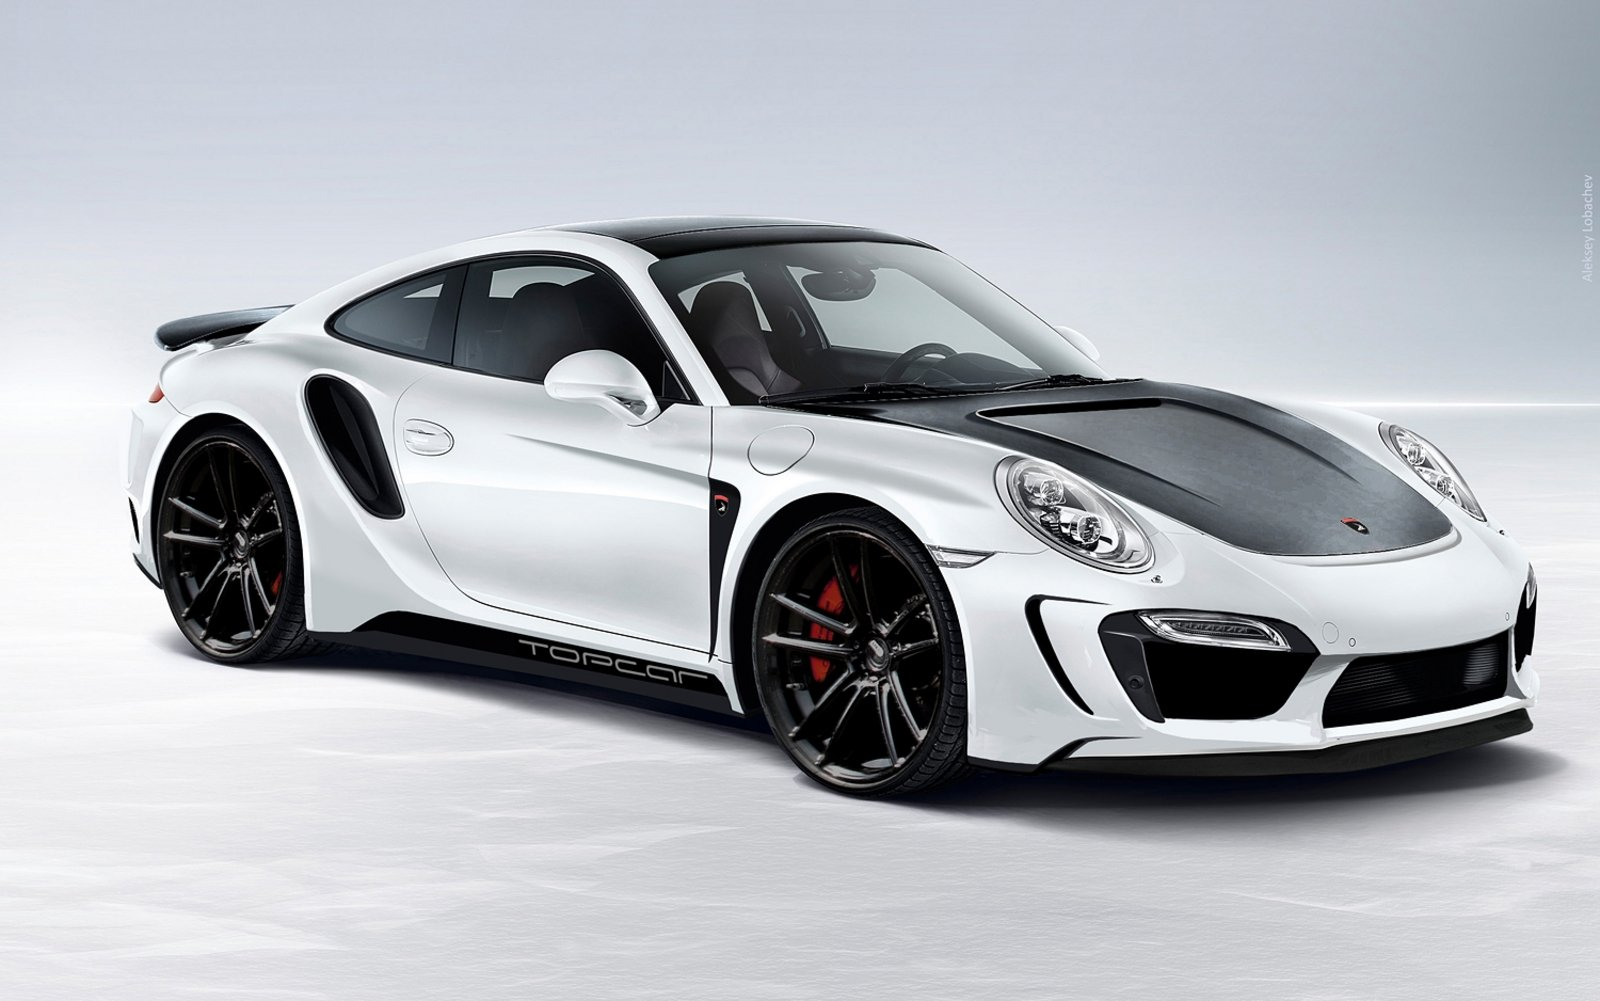 2014 porsche 911 turbo turbo s stinger gtr by topcar review top speed. Black Bedroom Furniture Sets. Home Design Ideas